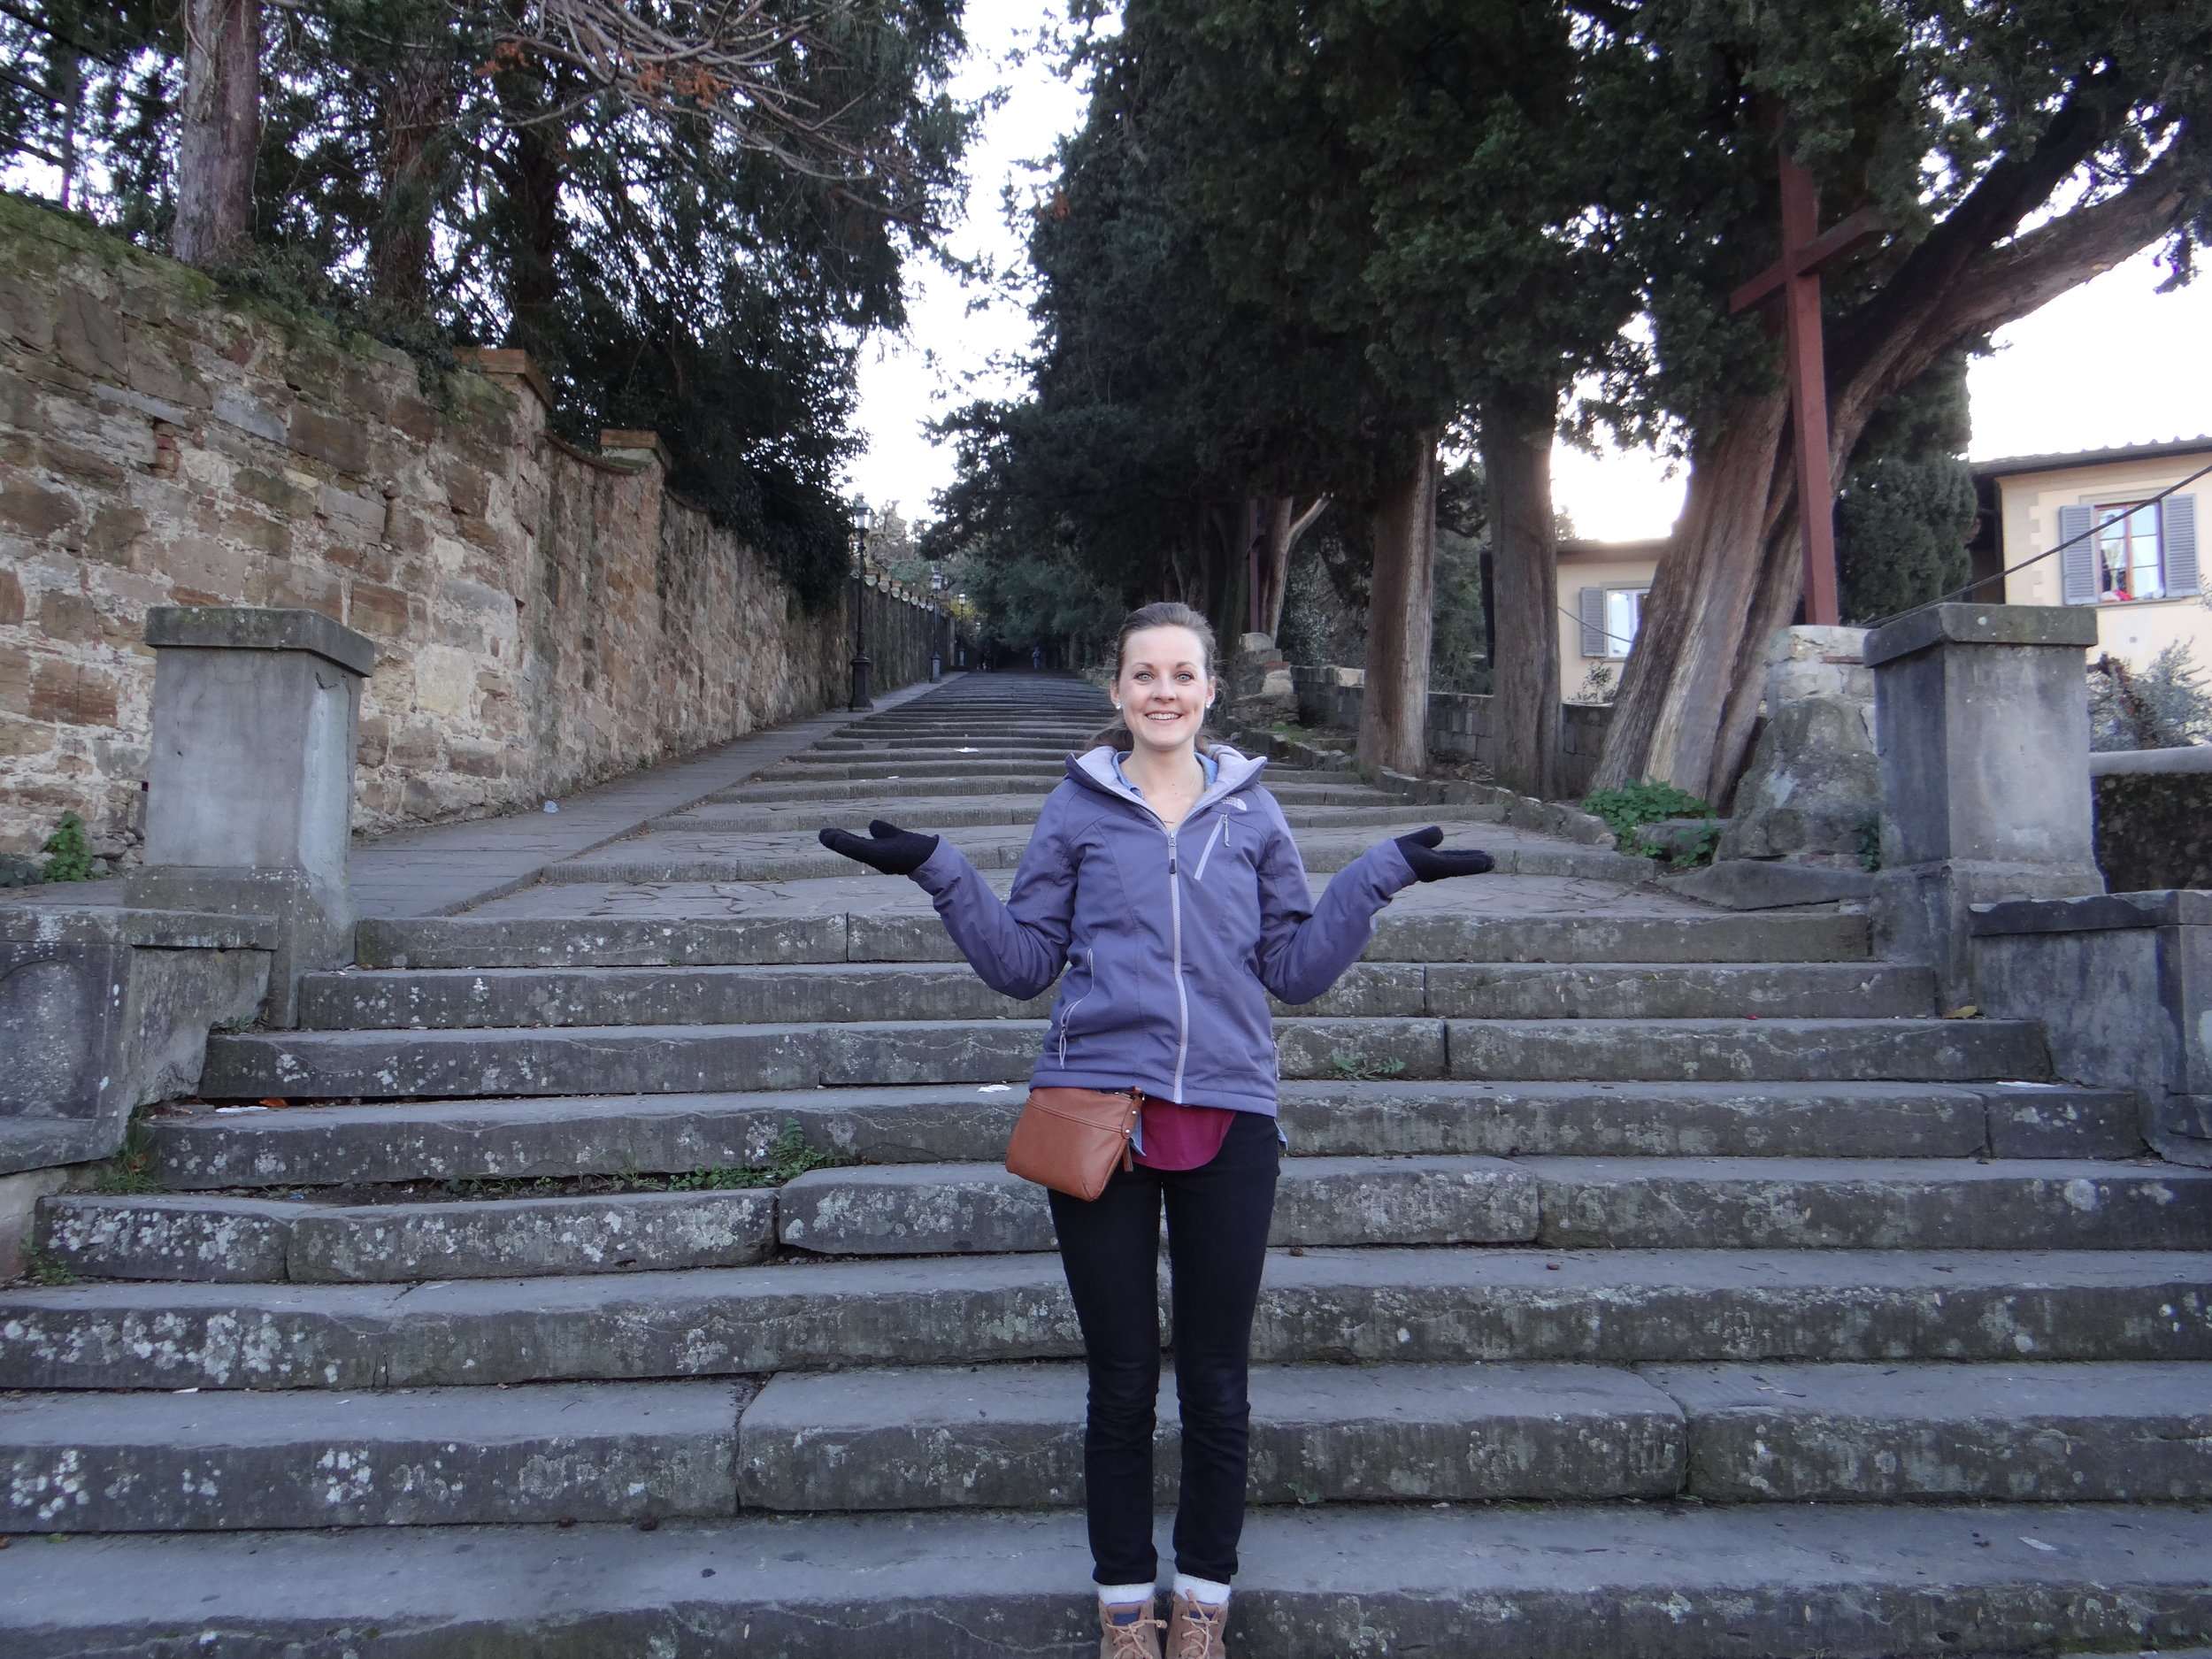 The steps up to the Piazzale Michaelangelo, a lookout spot for Florence.